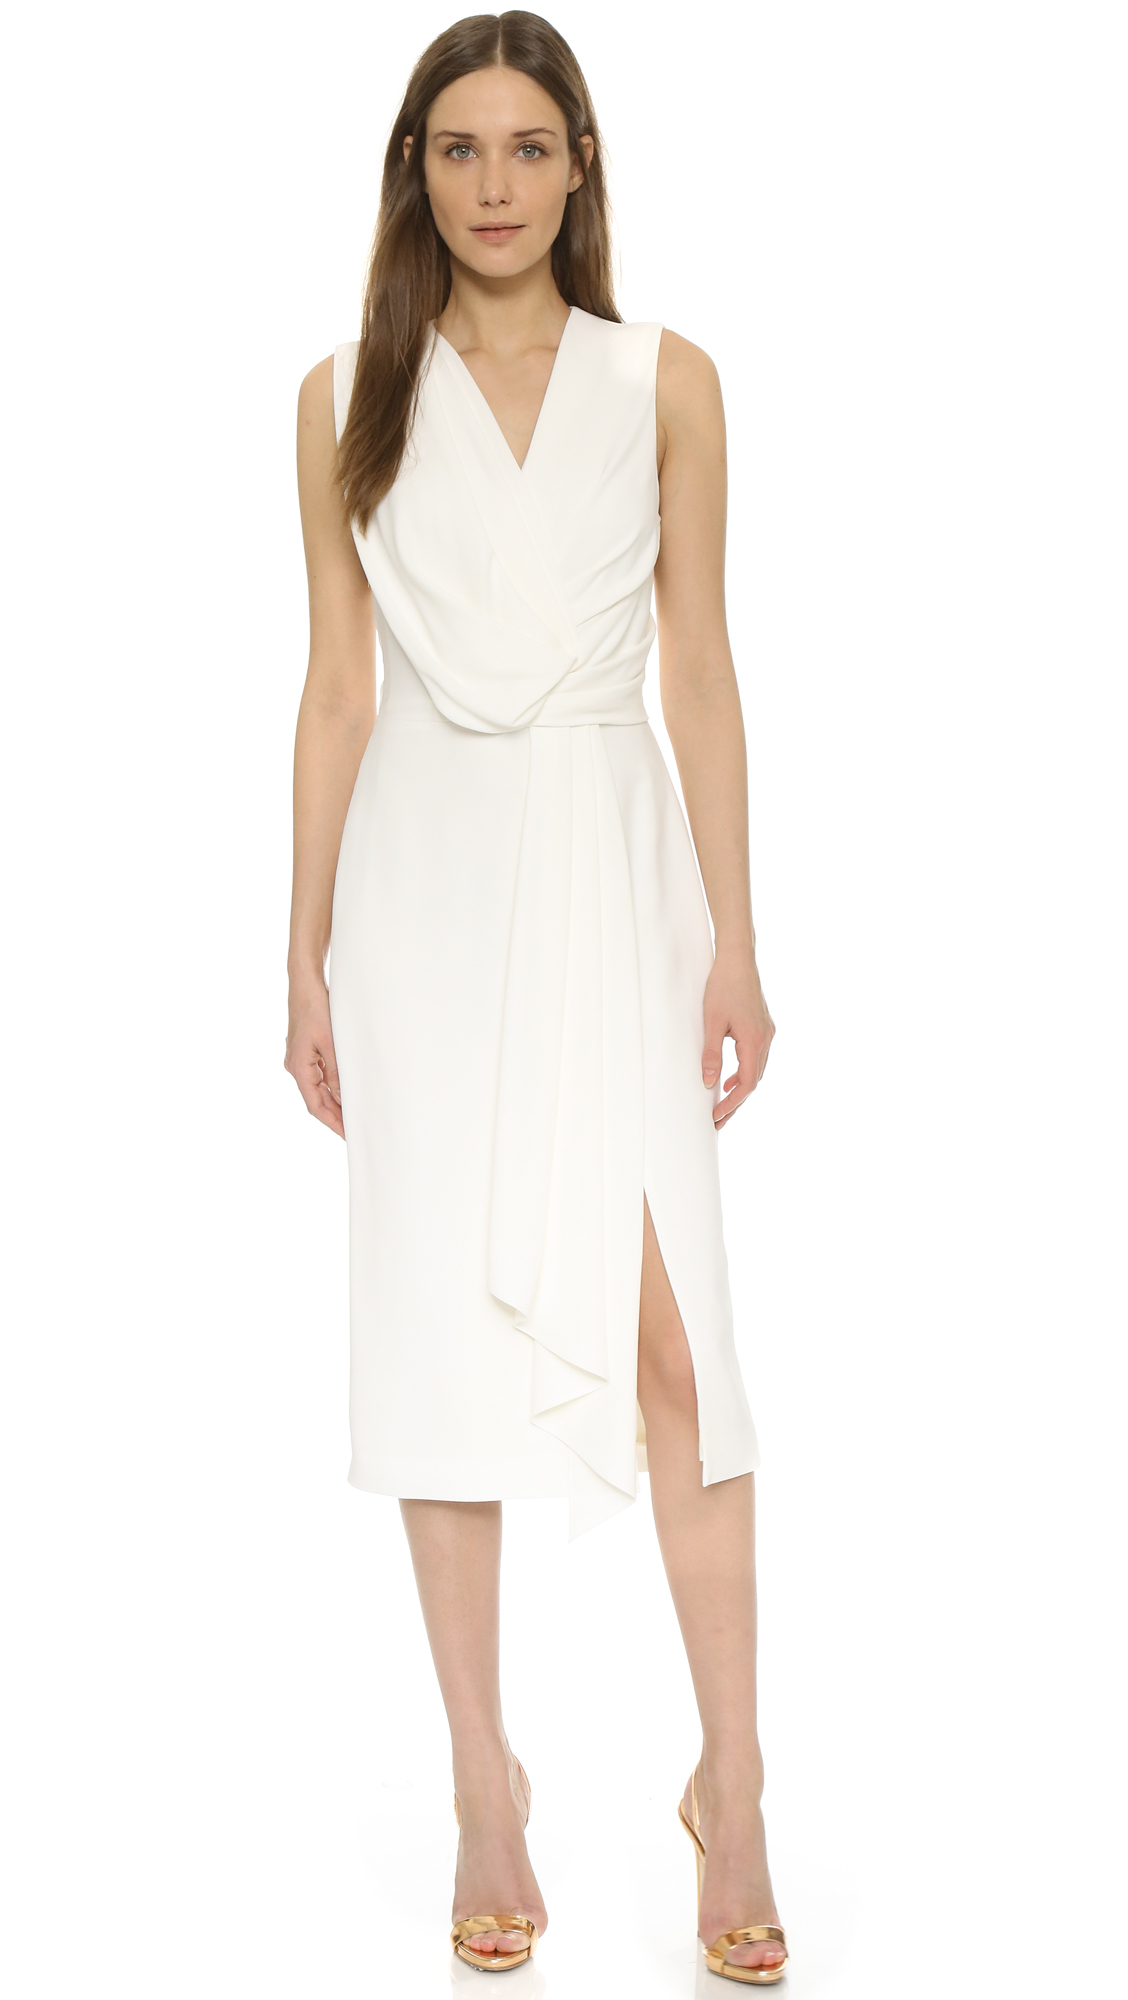 Jason wu white dress